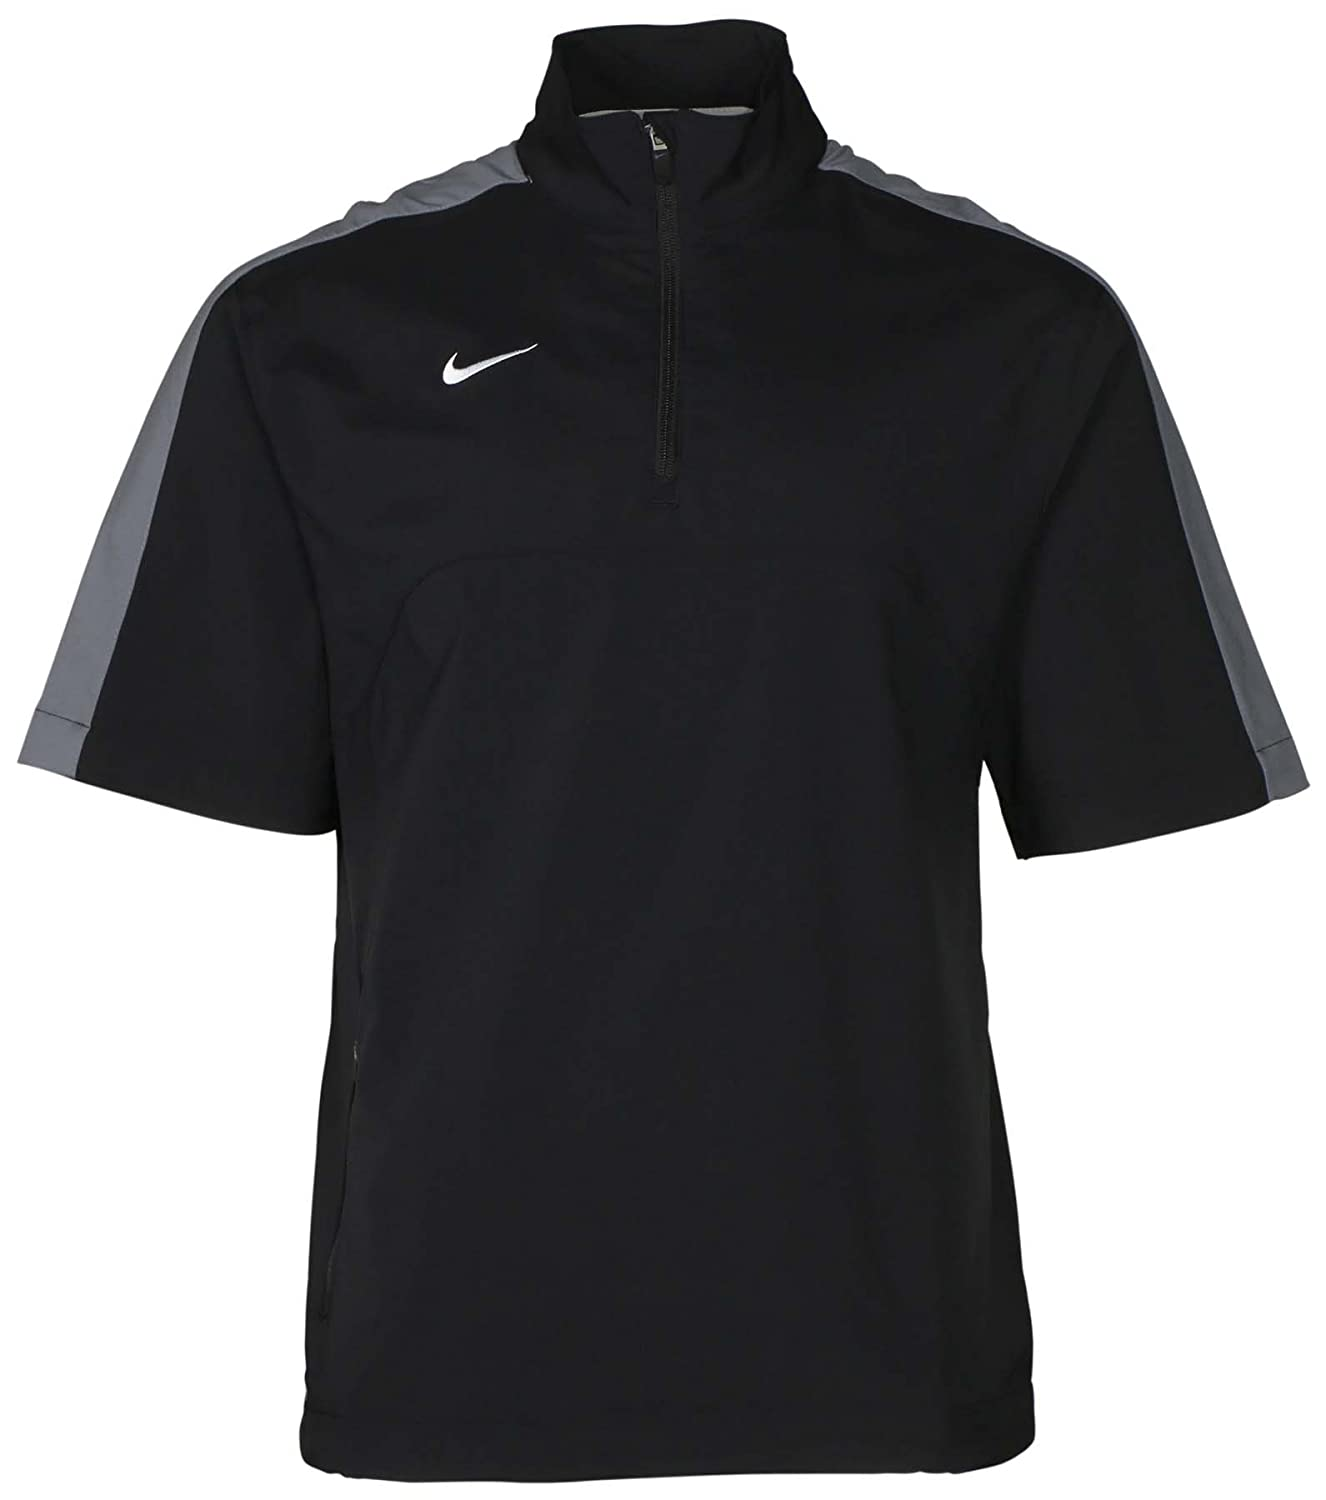 Nike Men's Dri-Fit 1/4 Zip Short Sleeve Training Jacket at Amazon ...